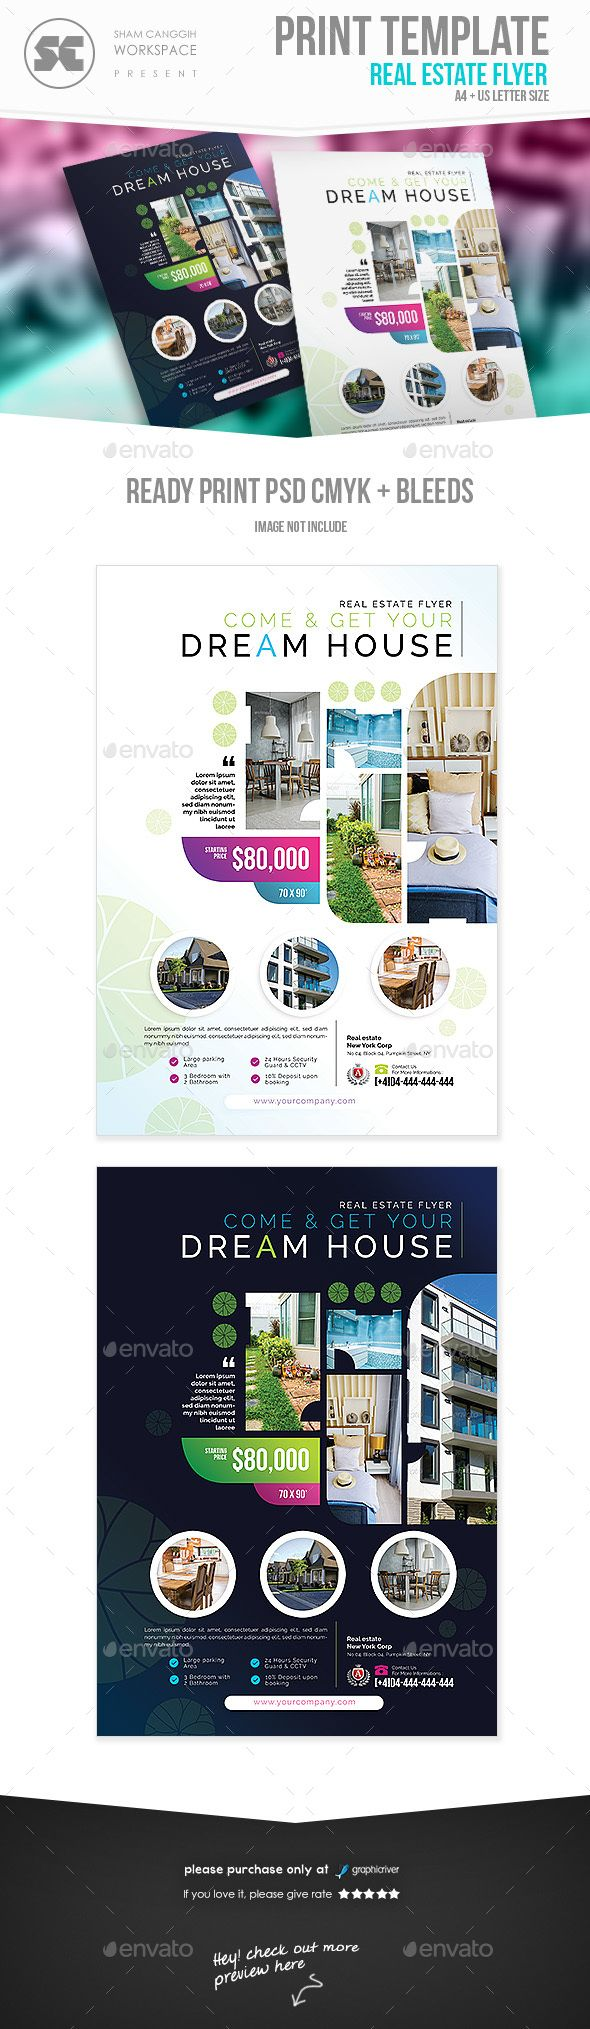 real estate flyer flyer templates designed exclusively for house